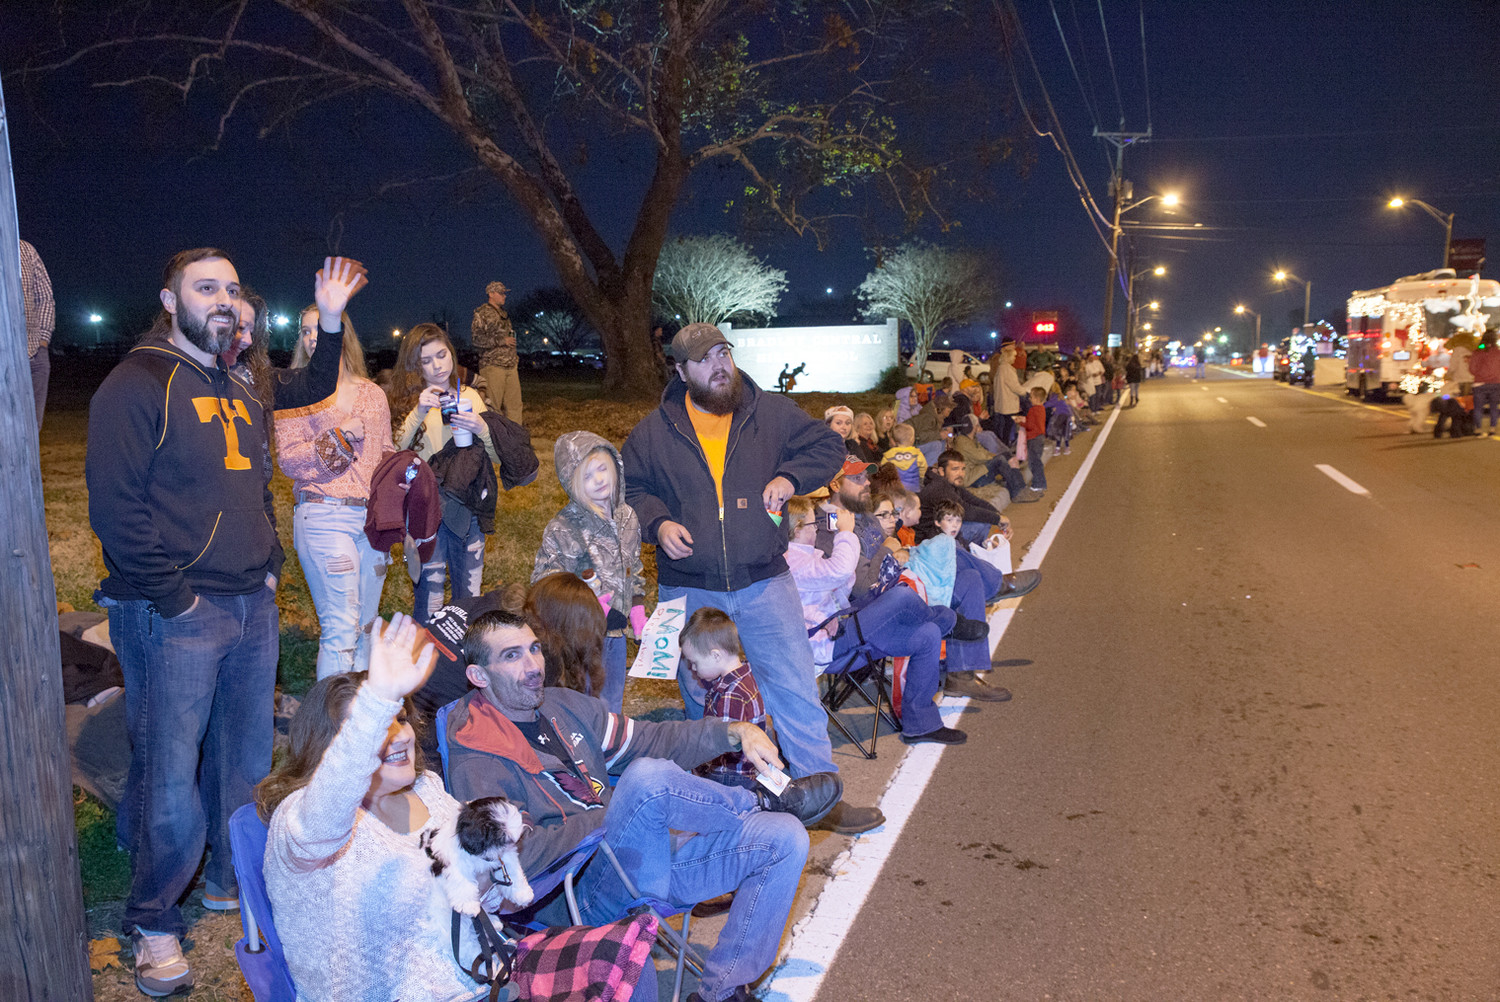 CLEVELANDERS CAME OUT IN droves to celebrate and take part in the Mainstreet Cleveland Christmas Parade.